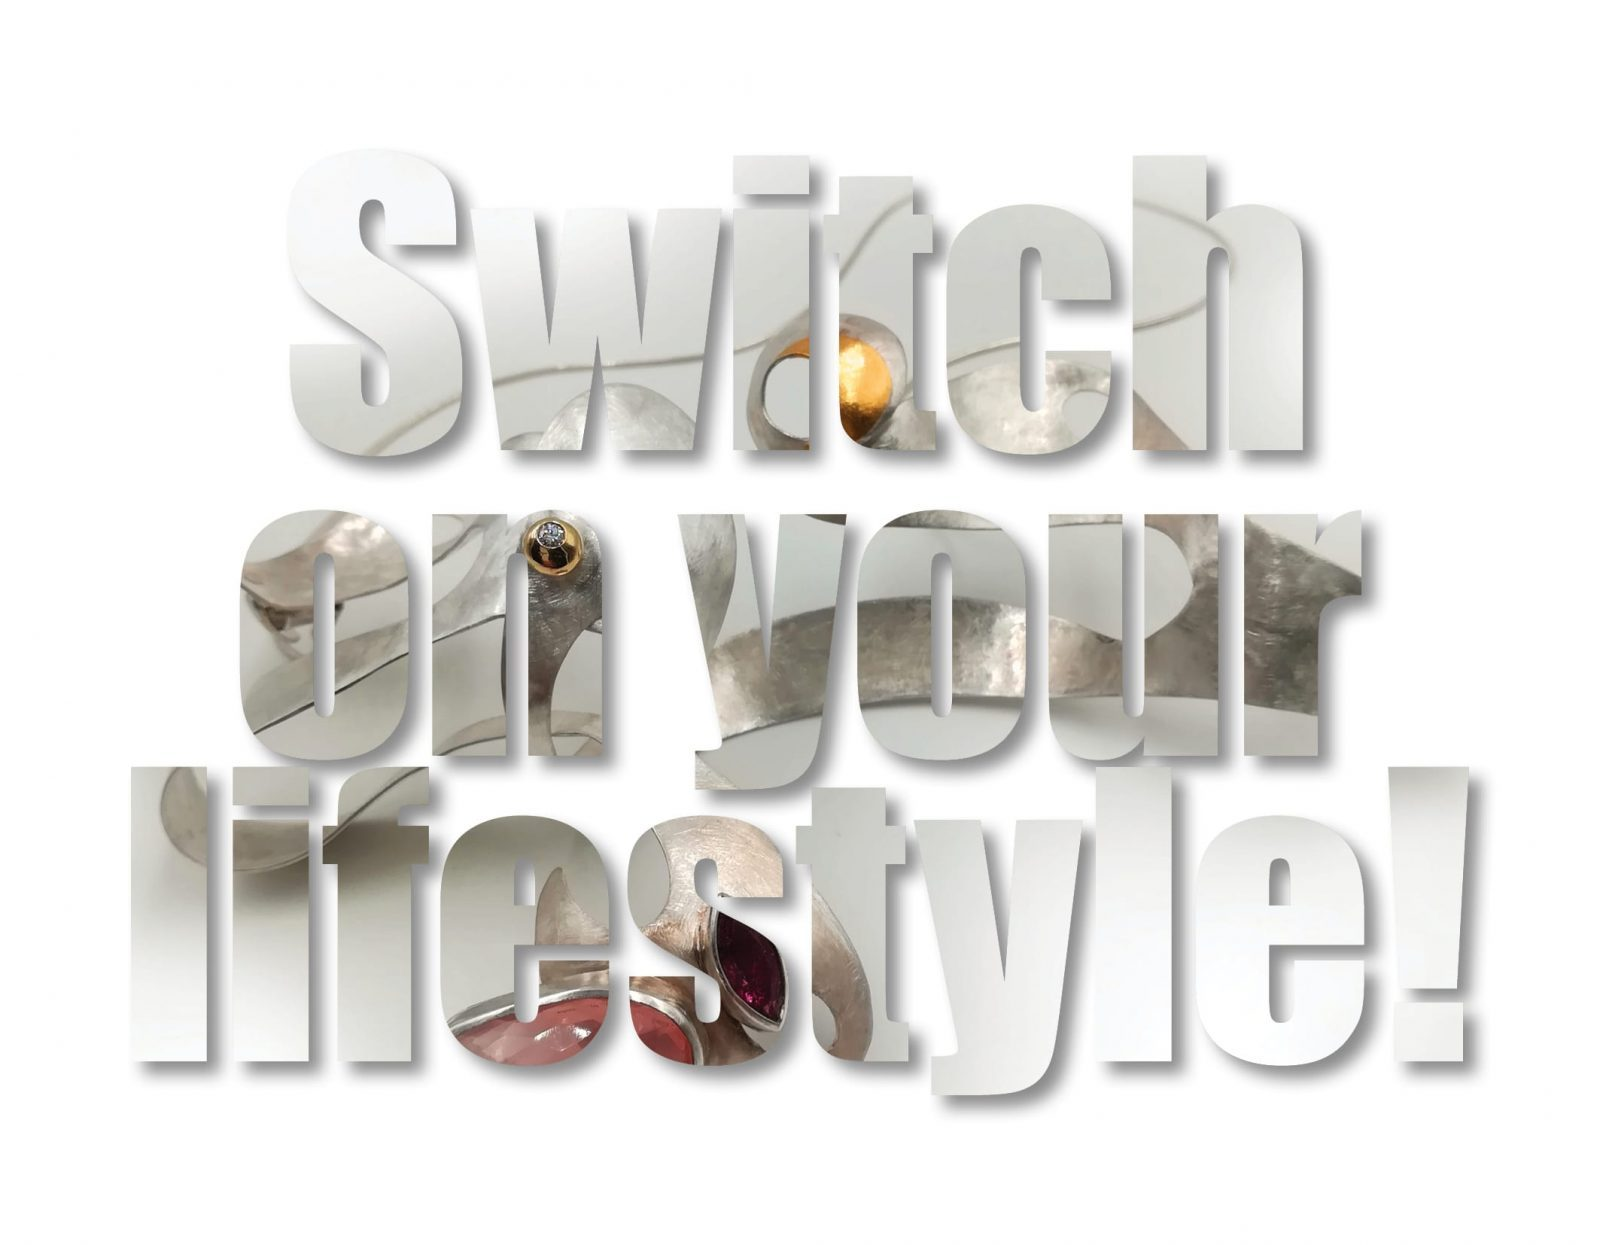 mikkyeger_claim-switch